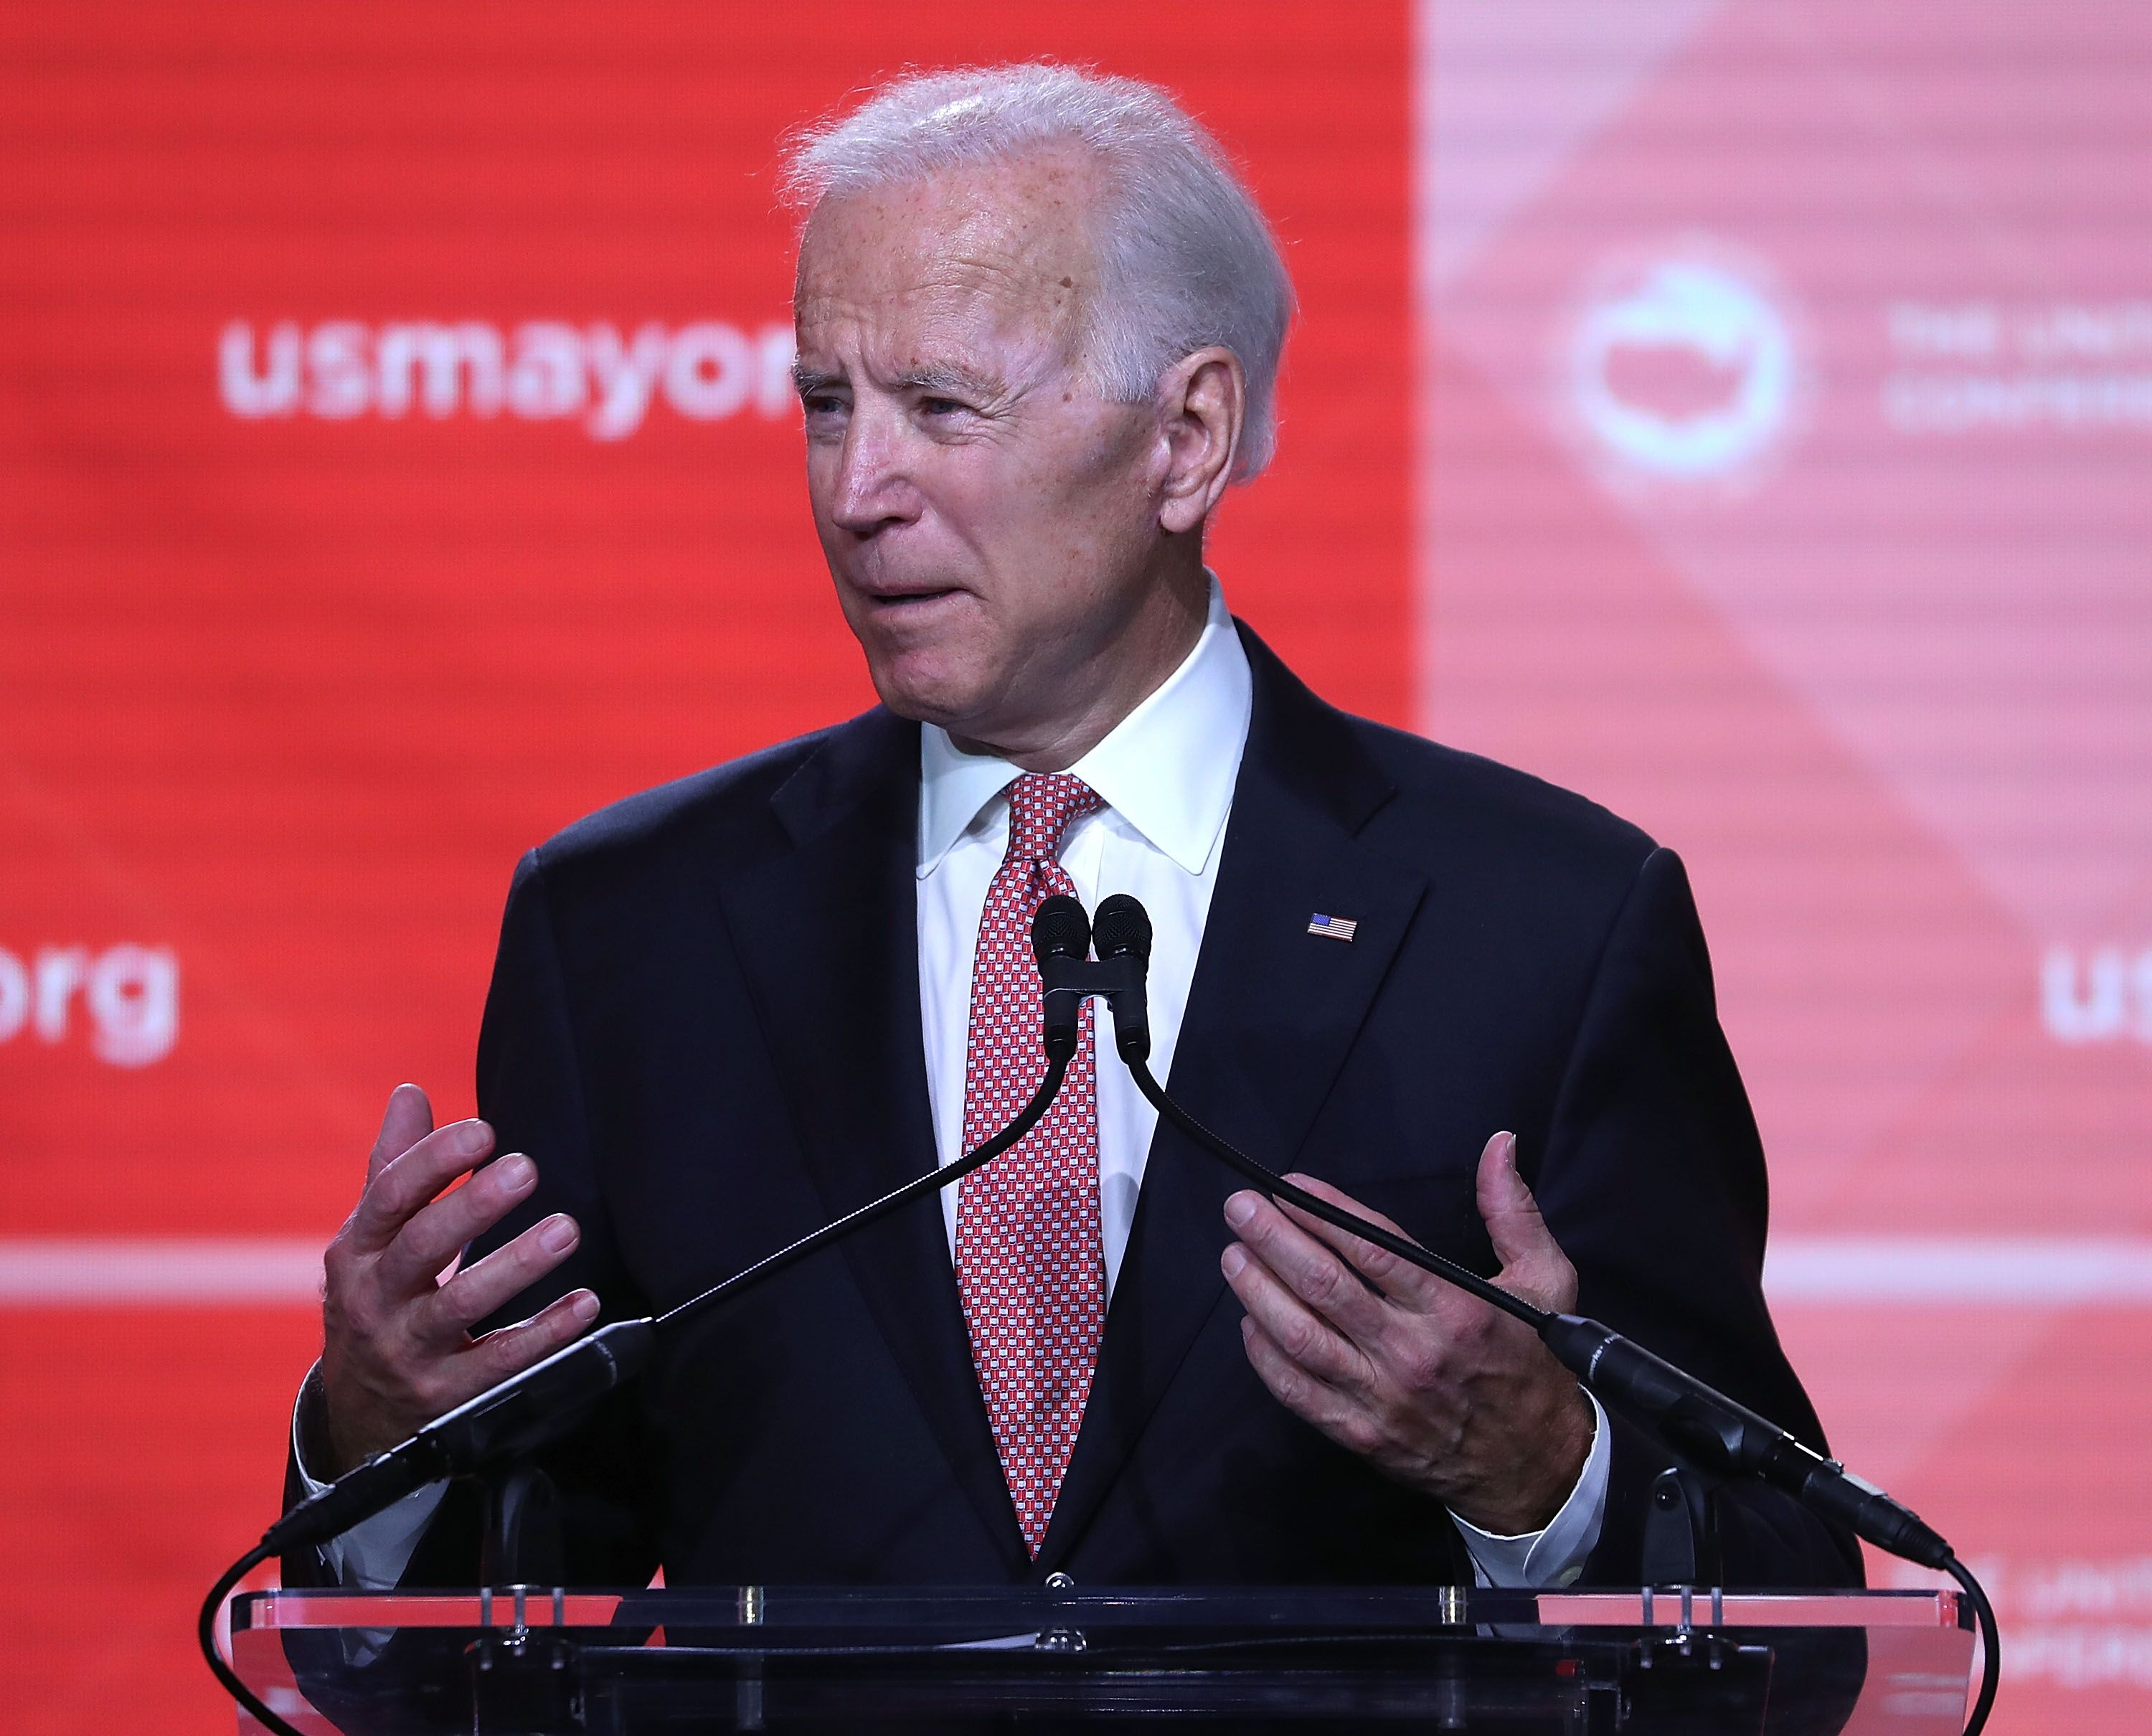 U.S. President Joe Biden spoke at the 87th United States Conference of Mayors Winter Meeting at the Capitol Hilton on January 24, 2019 | Photo: Getty Images